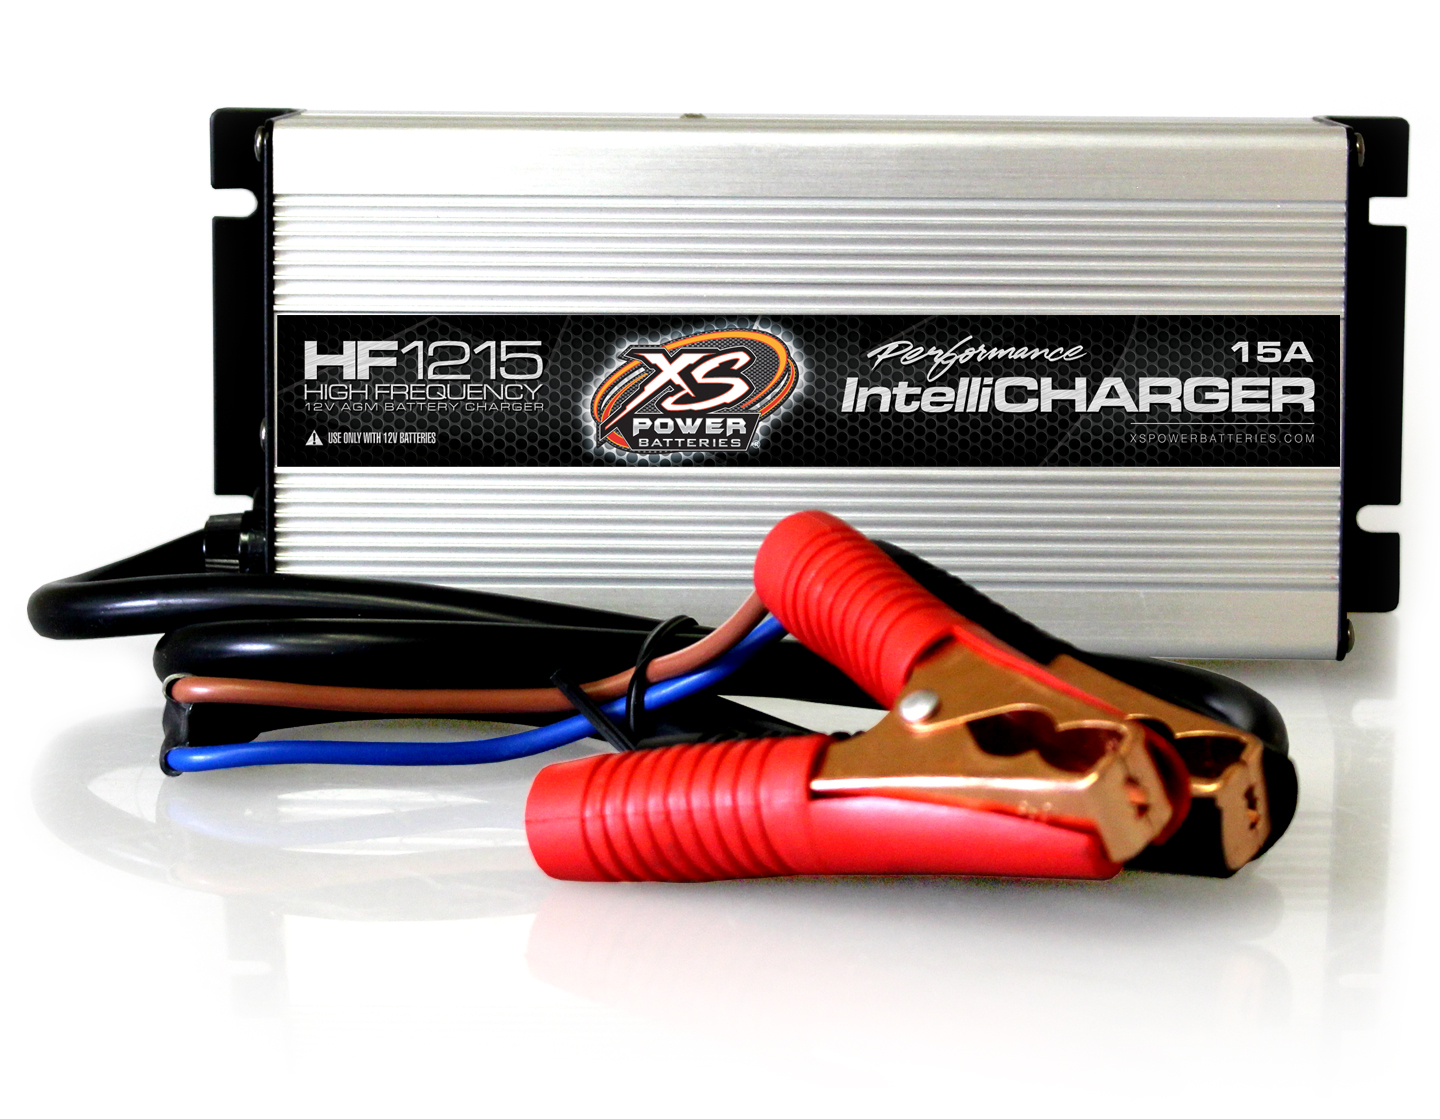 XS Power HF1215 12V High Frequency AGM IntelliCharger, 15A For Cars